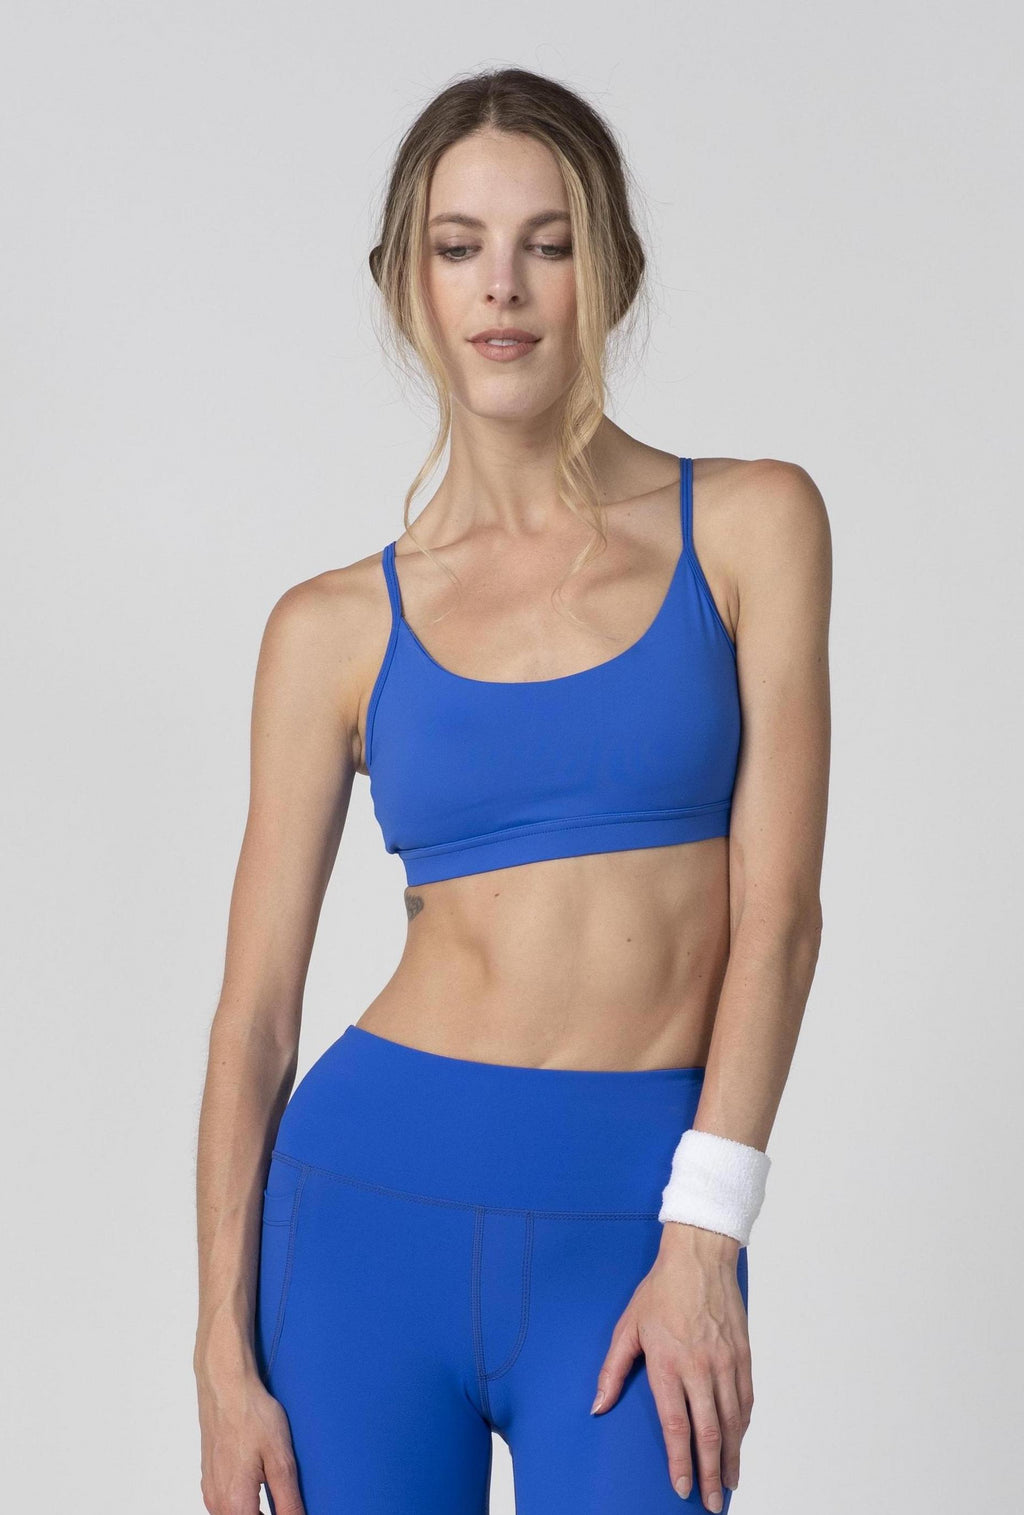 shop tonic activewear sweat society lilac bra USA Canada